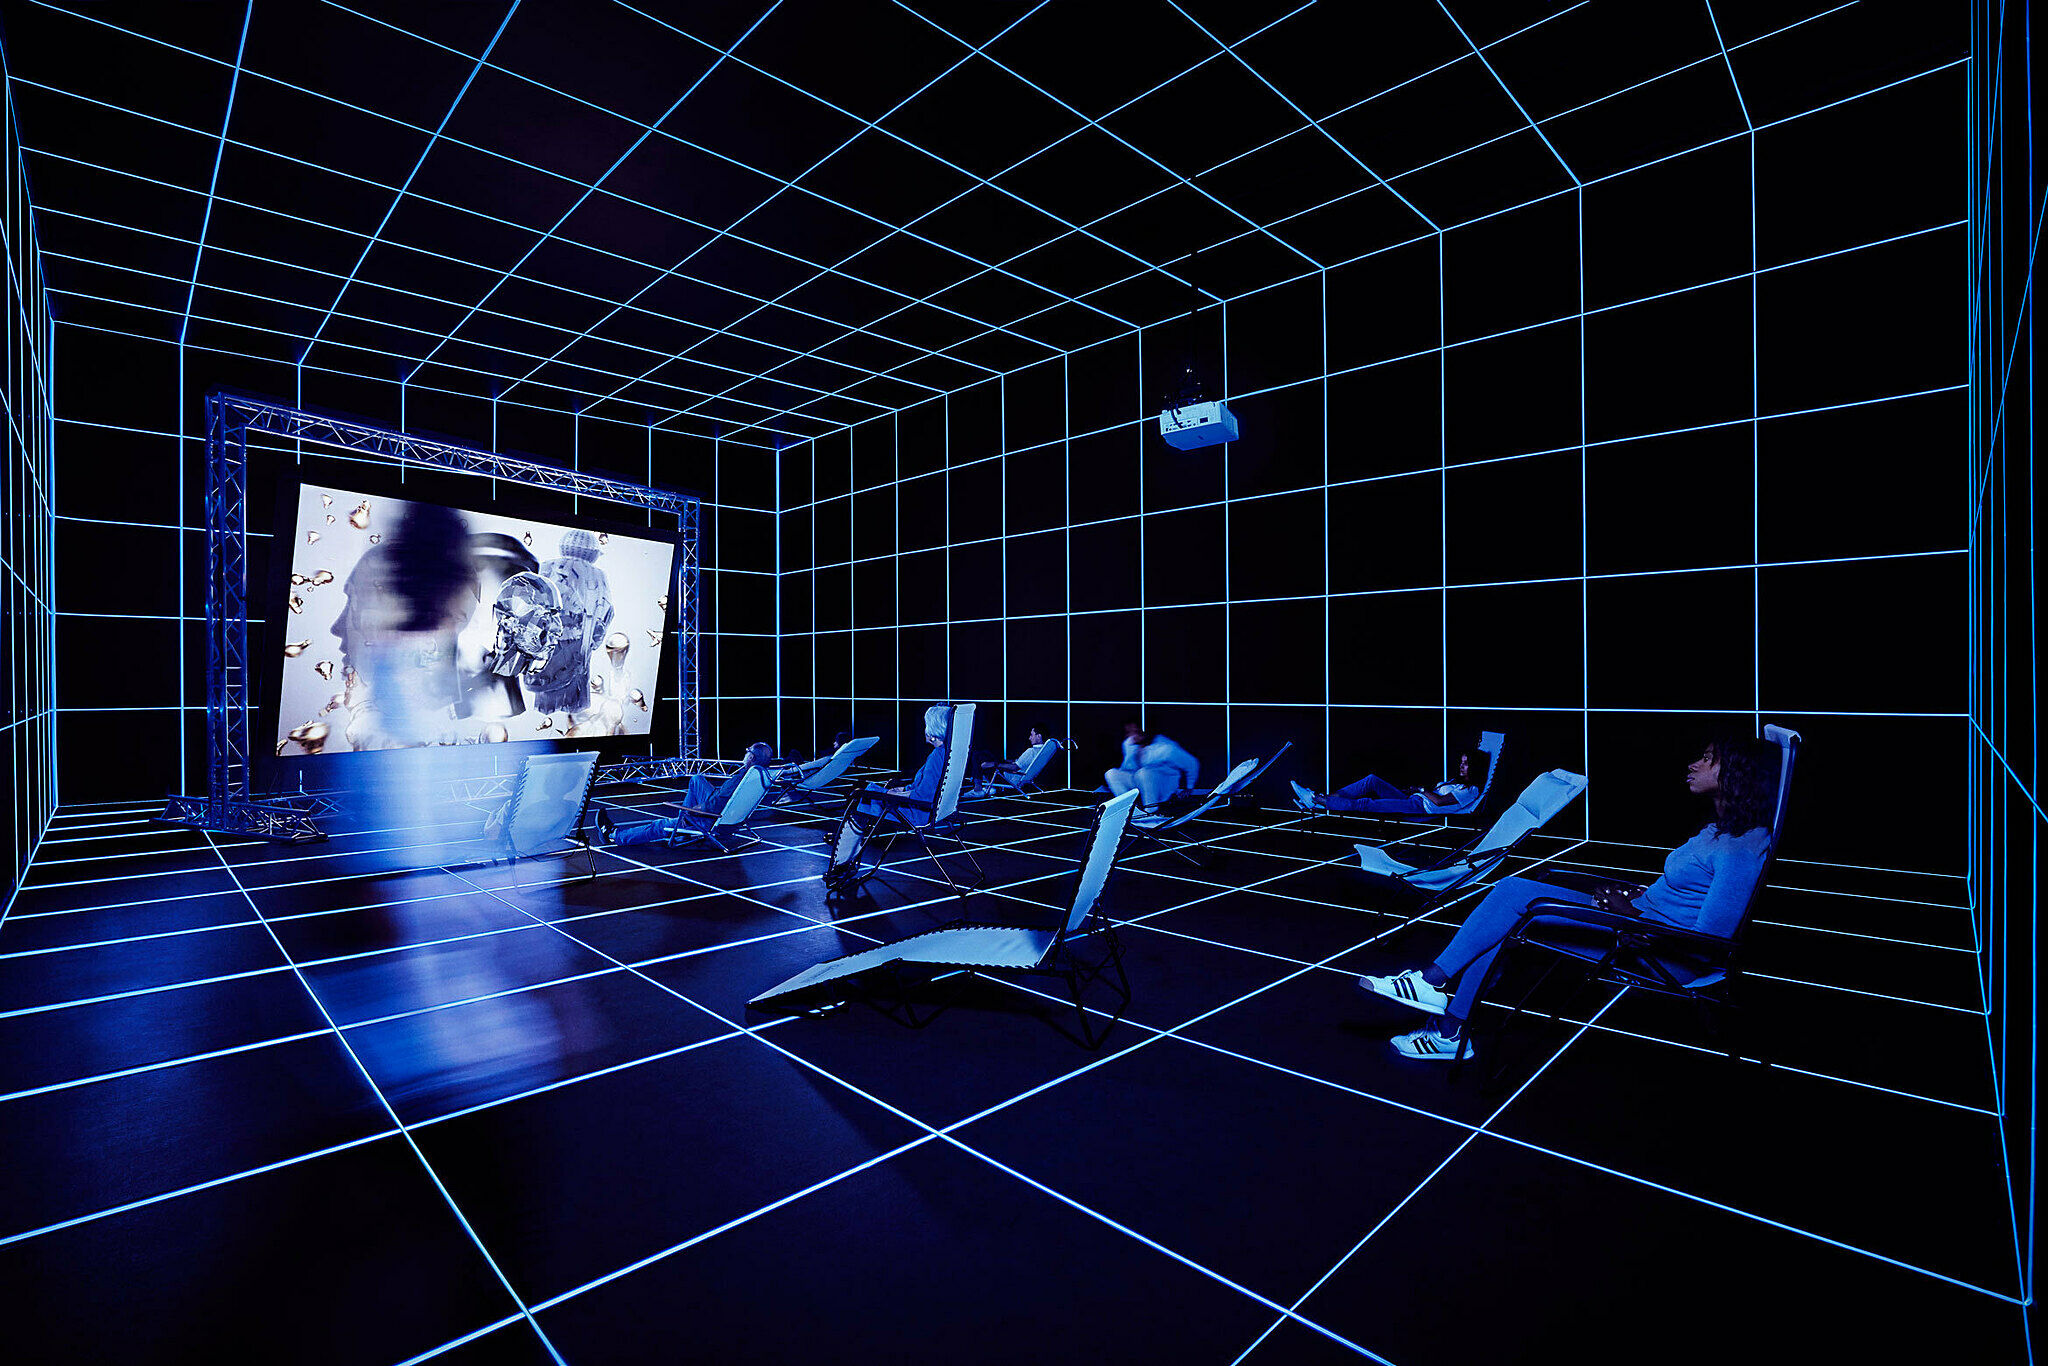 An immersive video installation by artist Hito Steyerl.